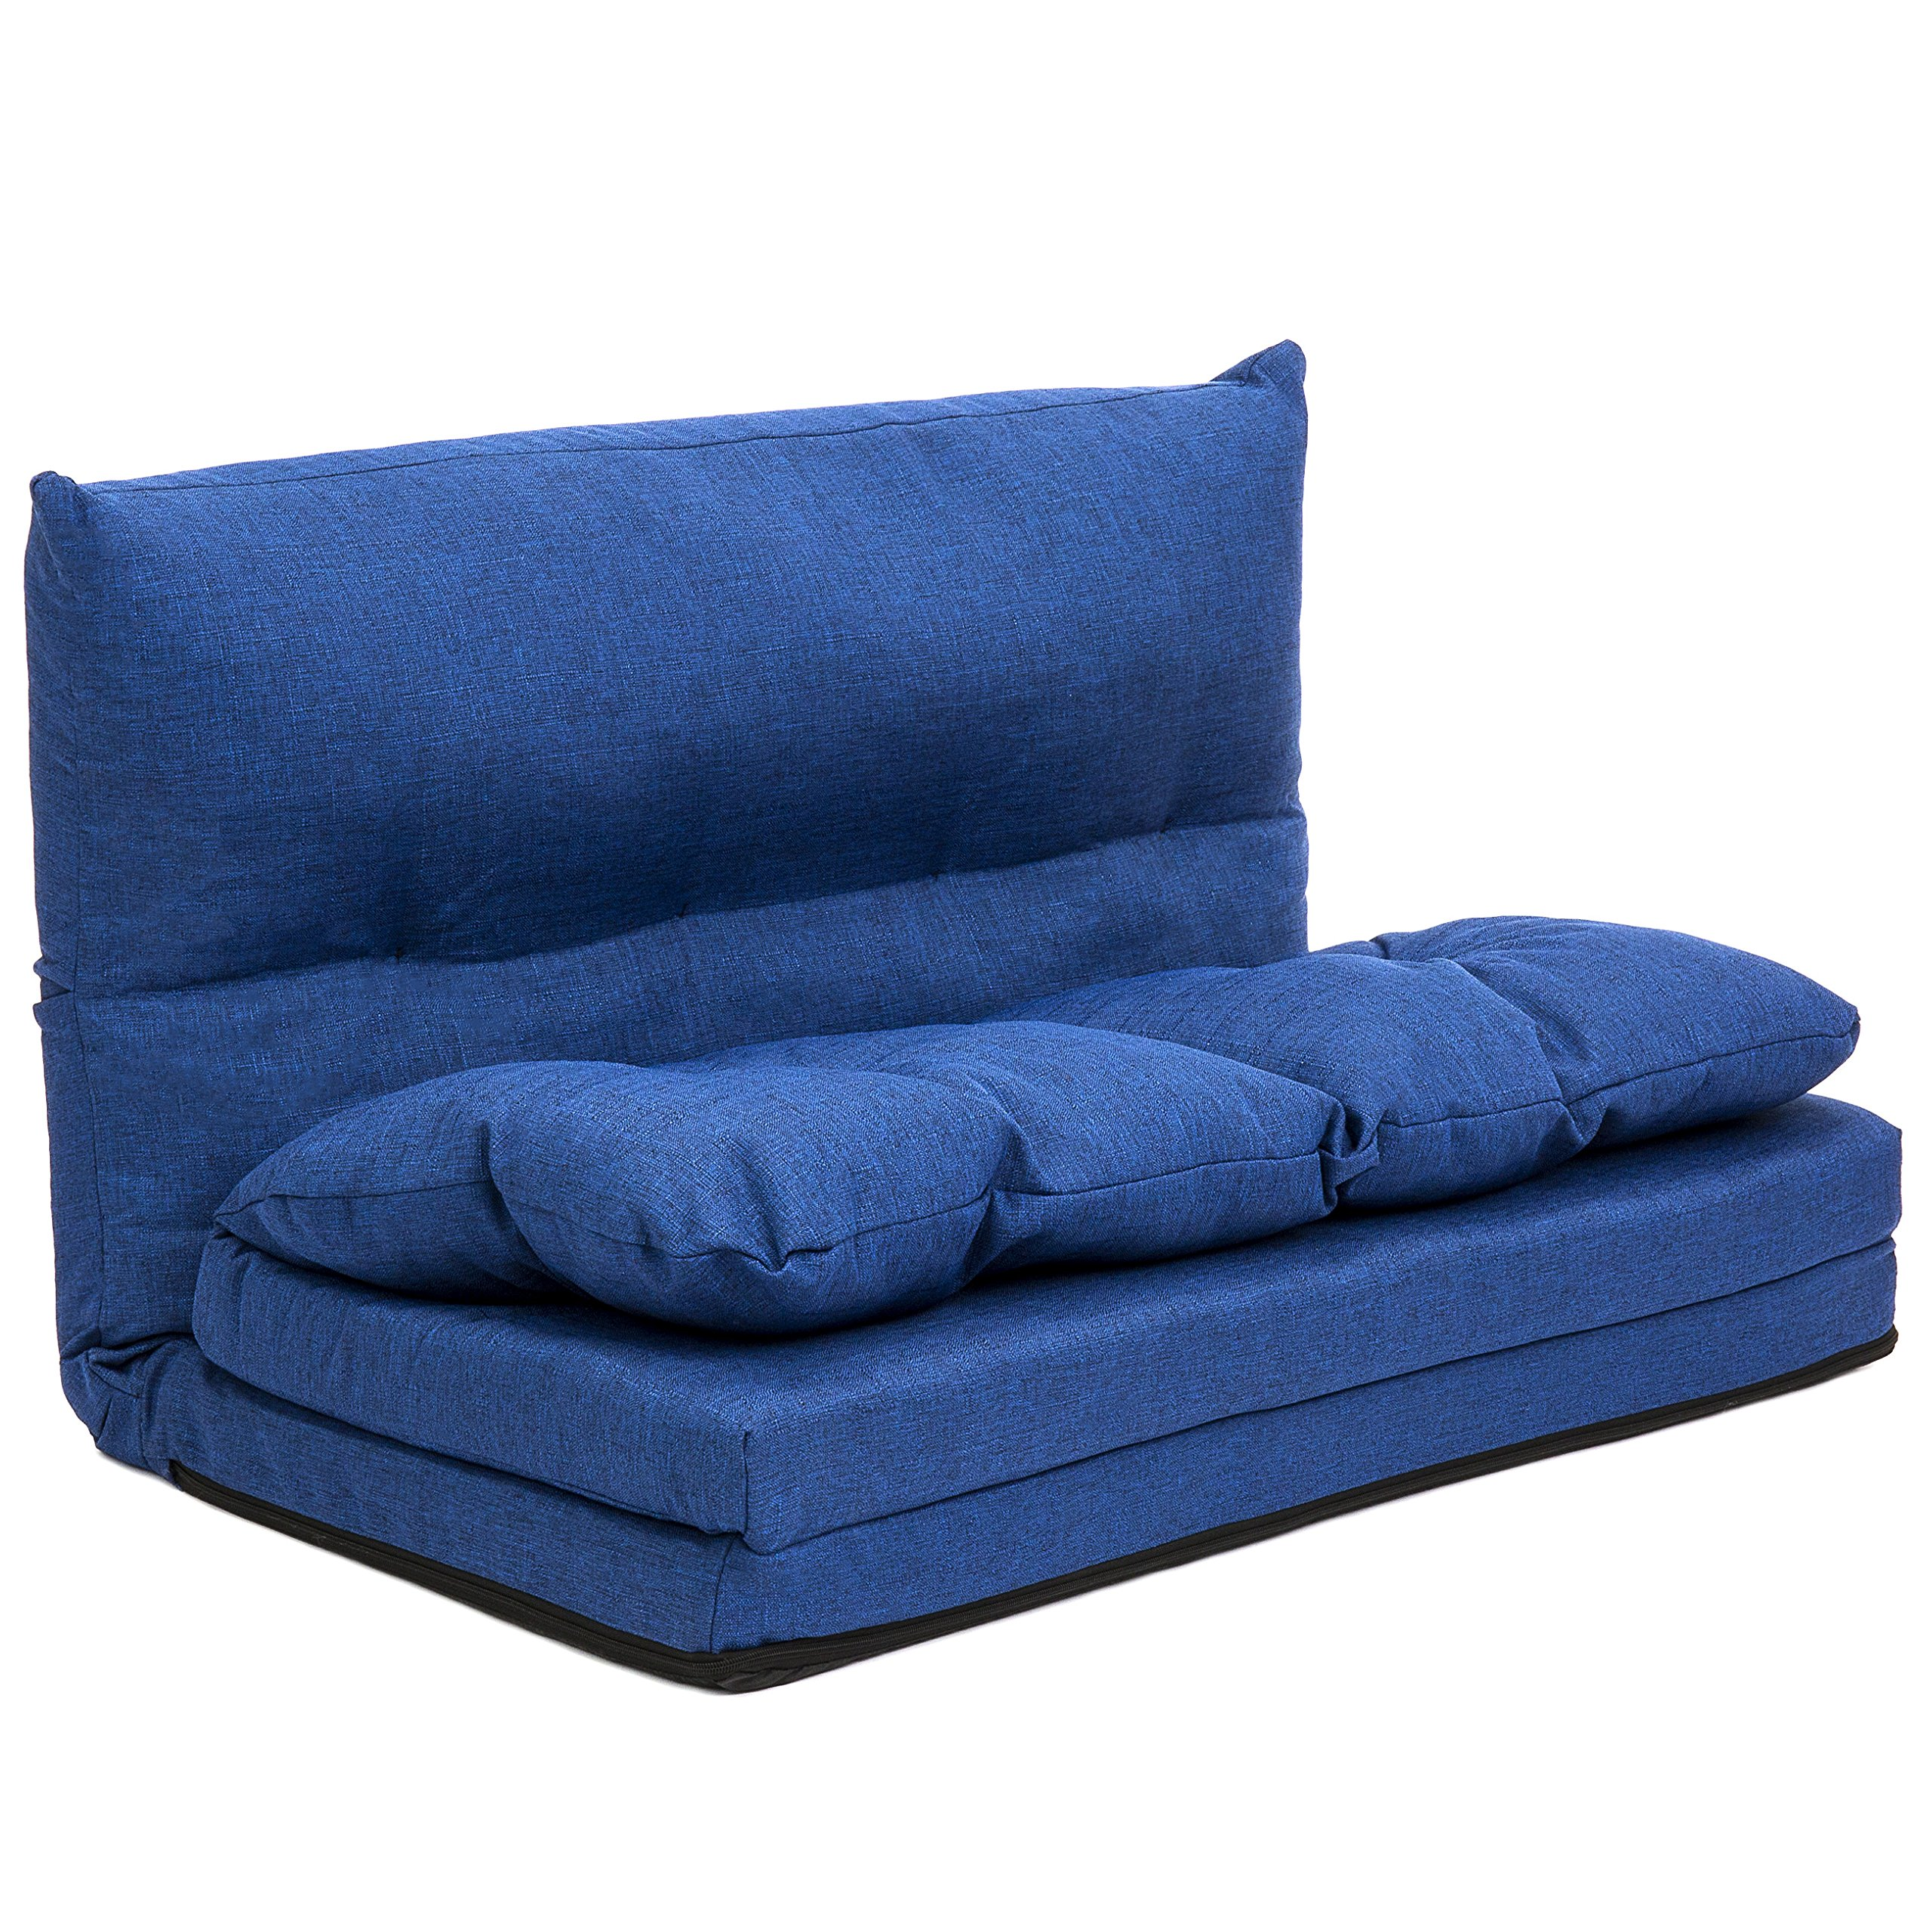 Best Choice Products Linen Folding Futon Chaise Lounge Sofa Gaming Chair Floor Couch, Blue by Best Choice Products